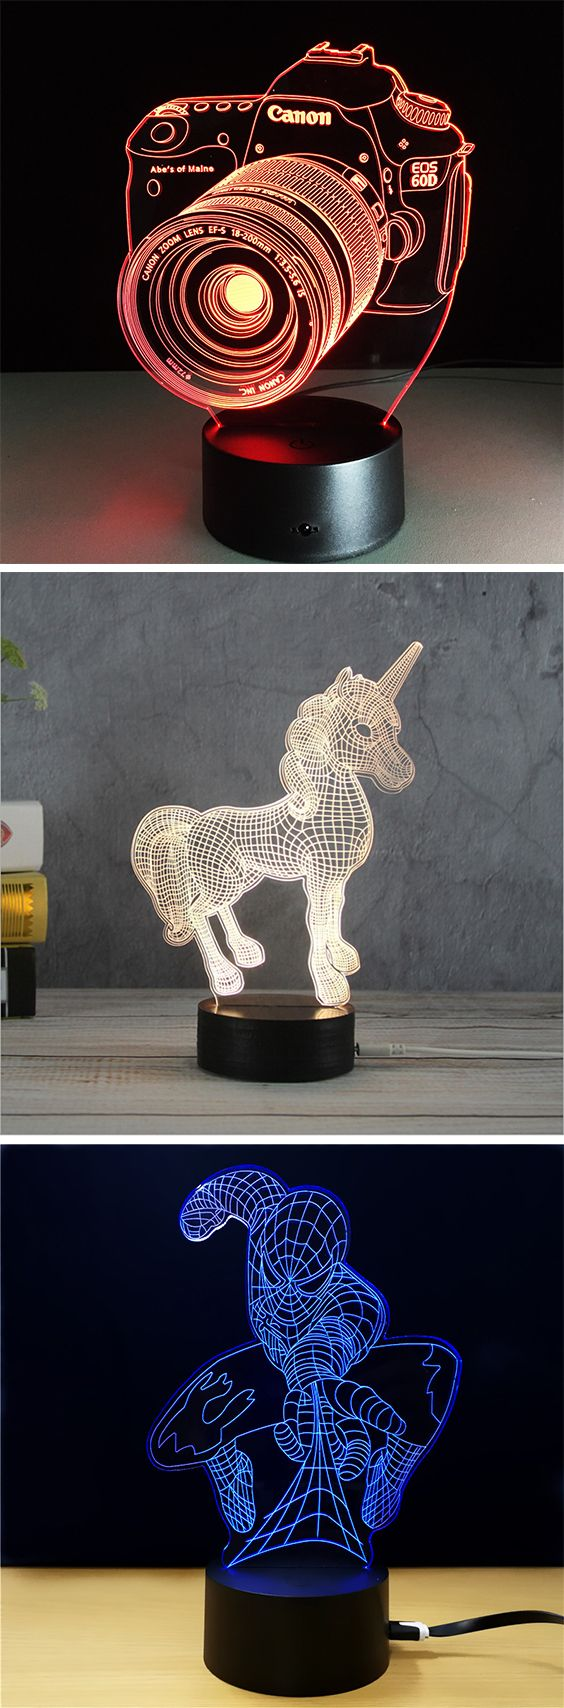 50% OFF Christmas 3D LED Night Lights,Free Shipping Worldwide.